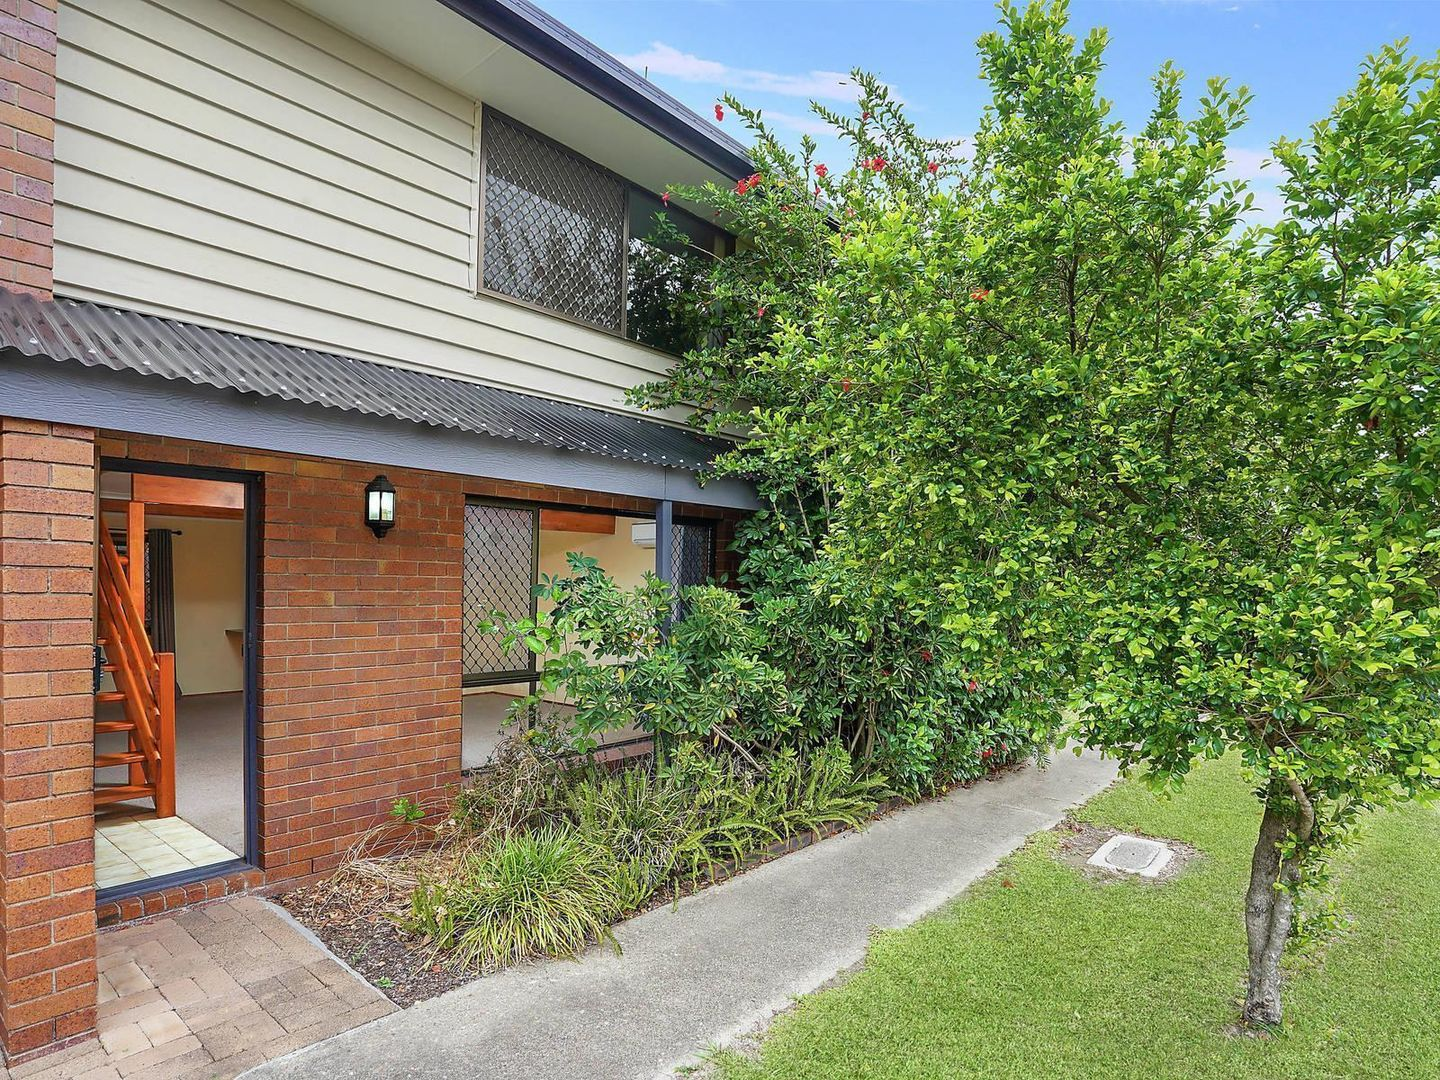 6/136 Bryants Road, Shailer Park QLD 4128, Image 0